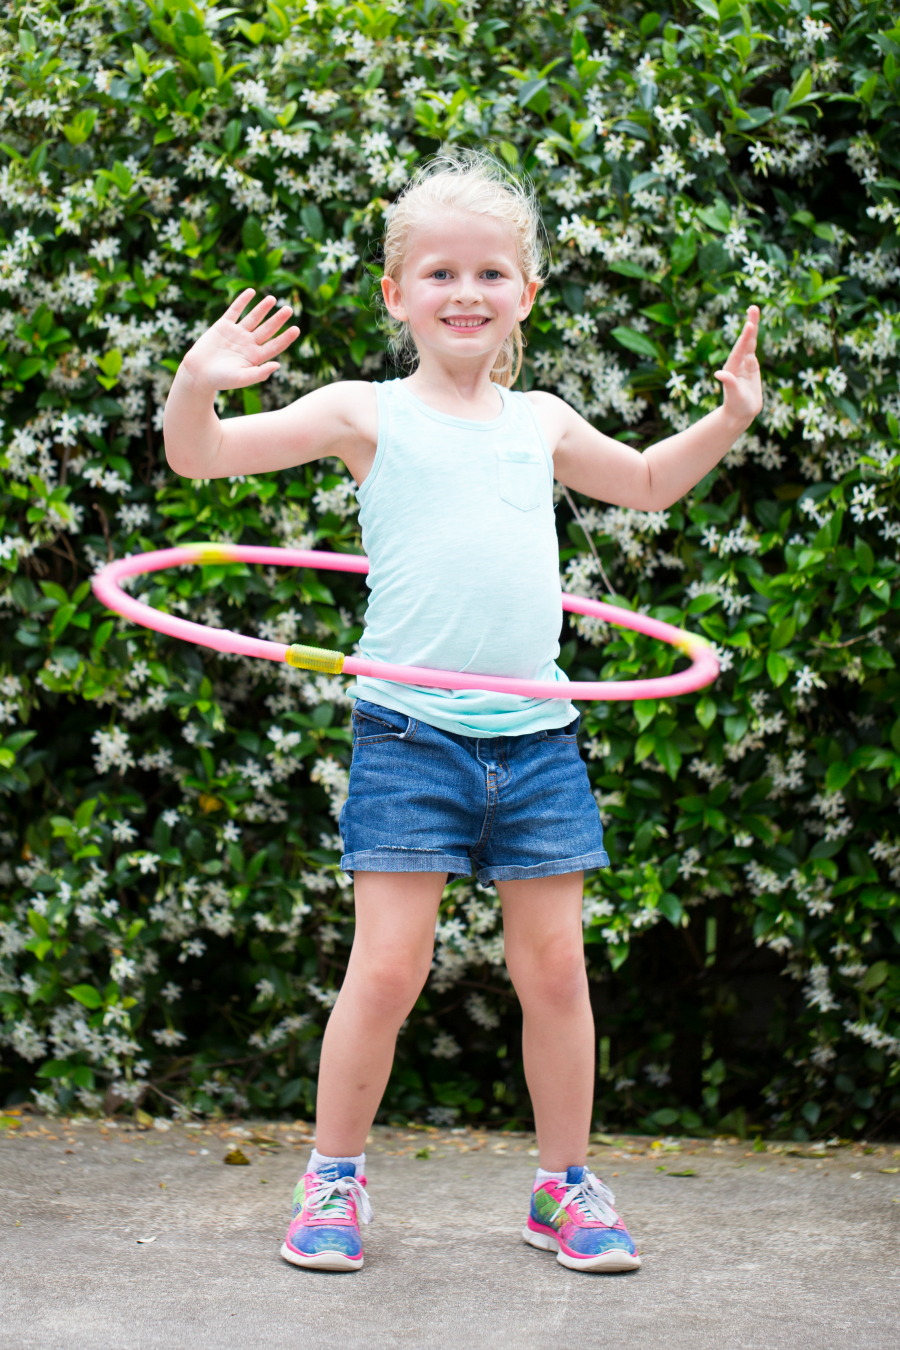 Girls Hula Hoop Contest!! Ahh, we used to love to hula hoop